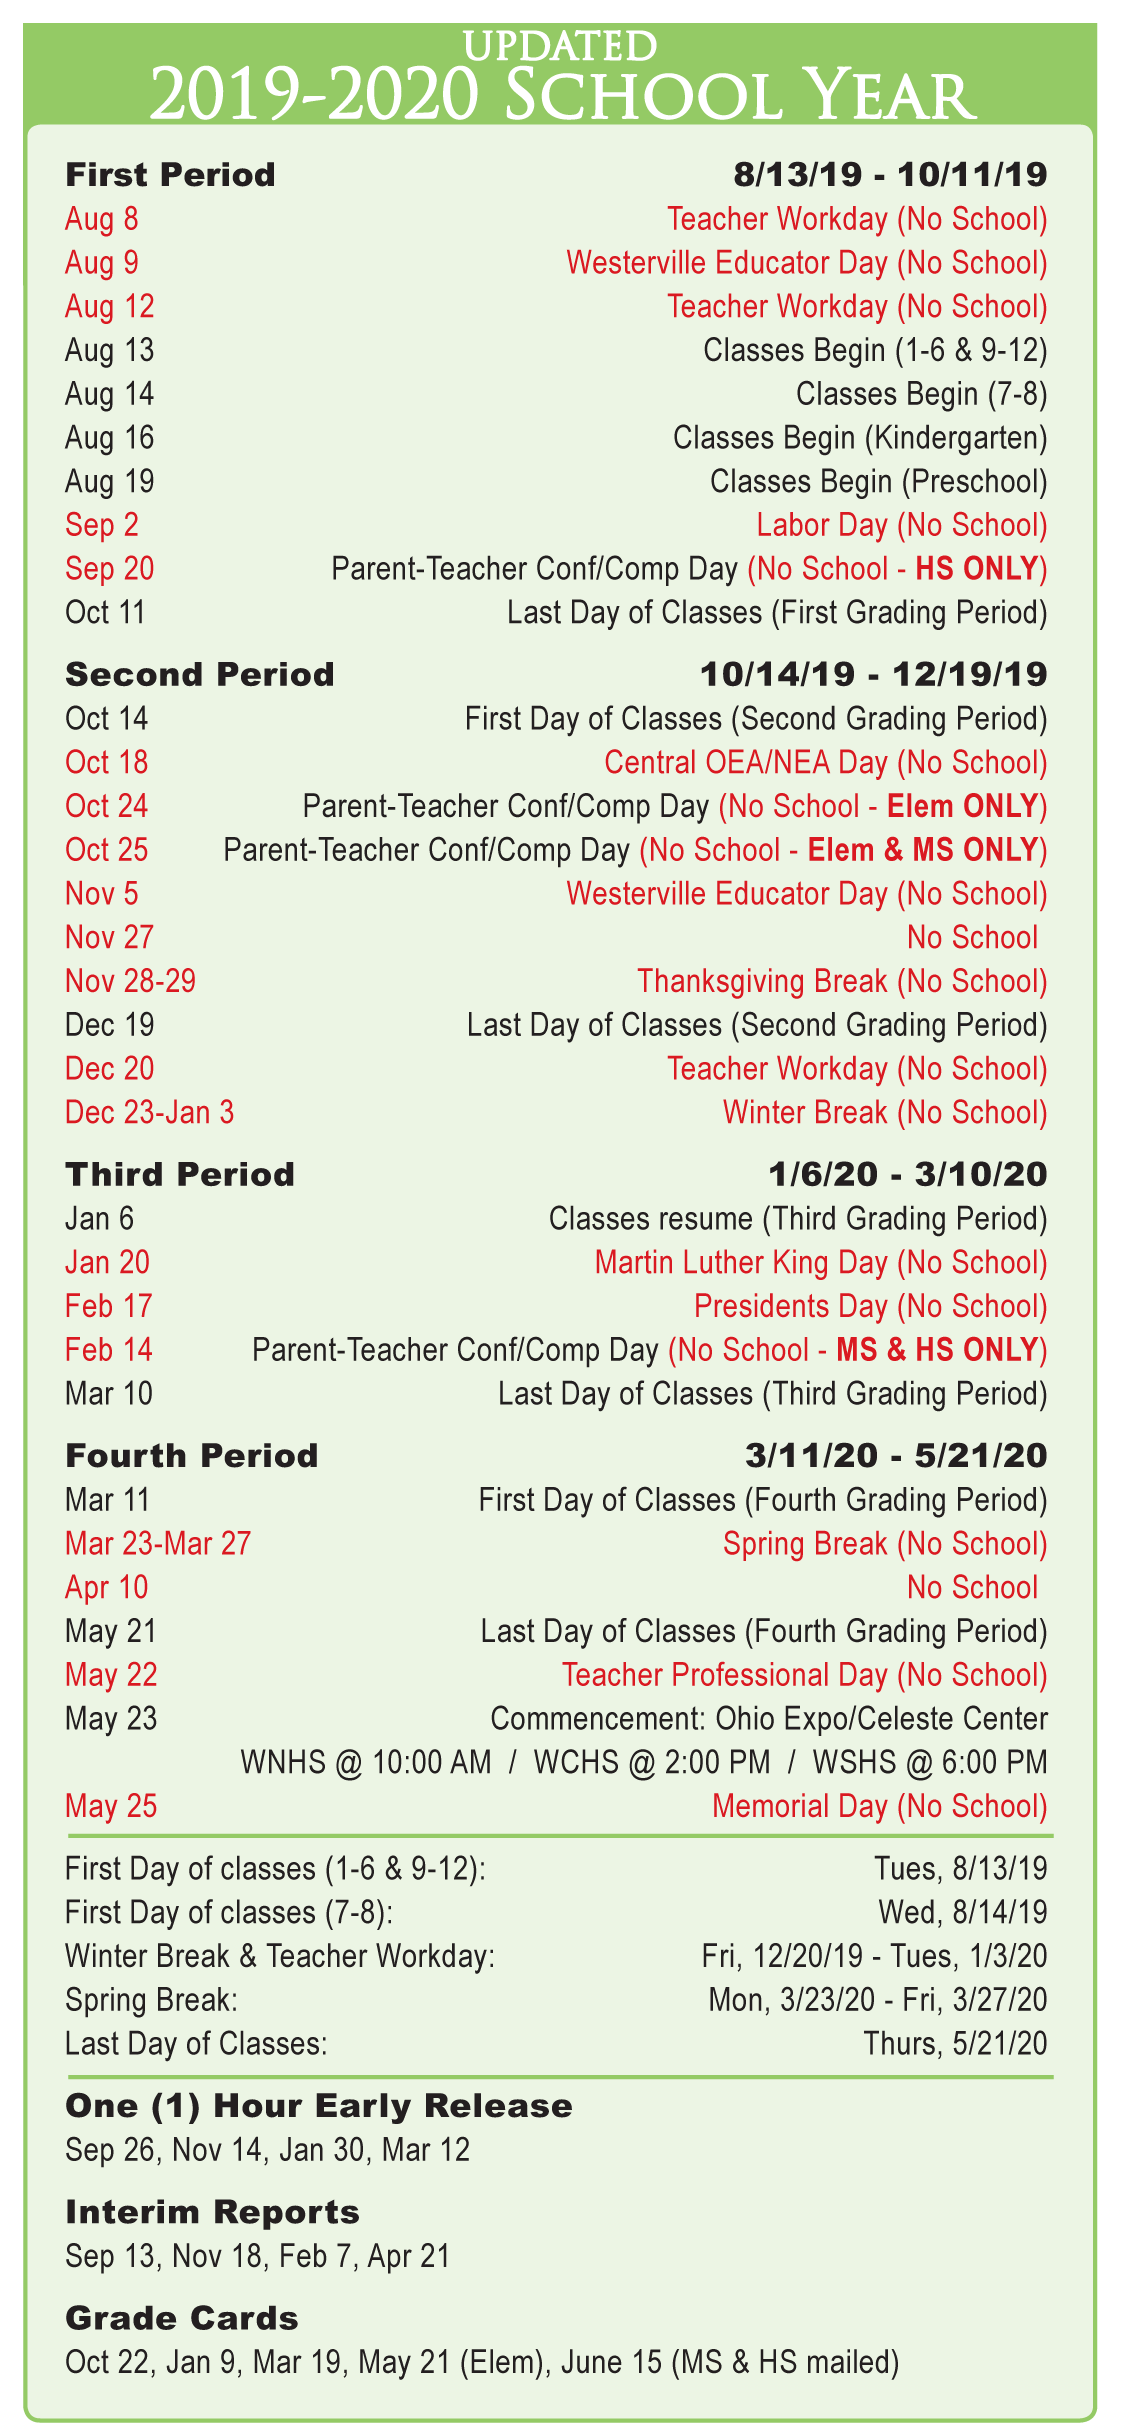 Annual District Calendar - Westerville City Schools